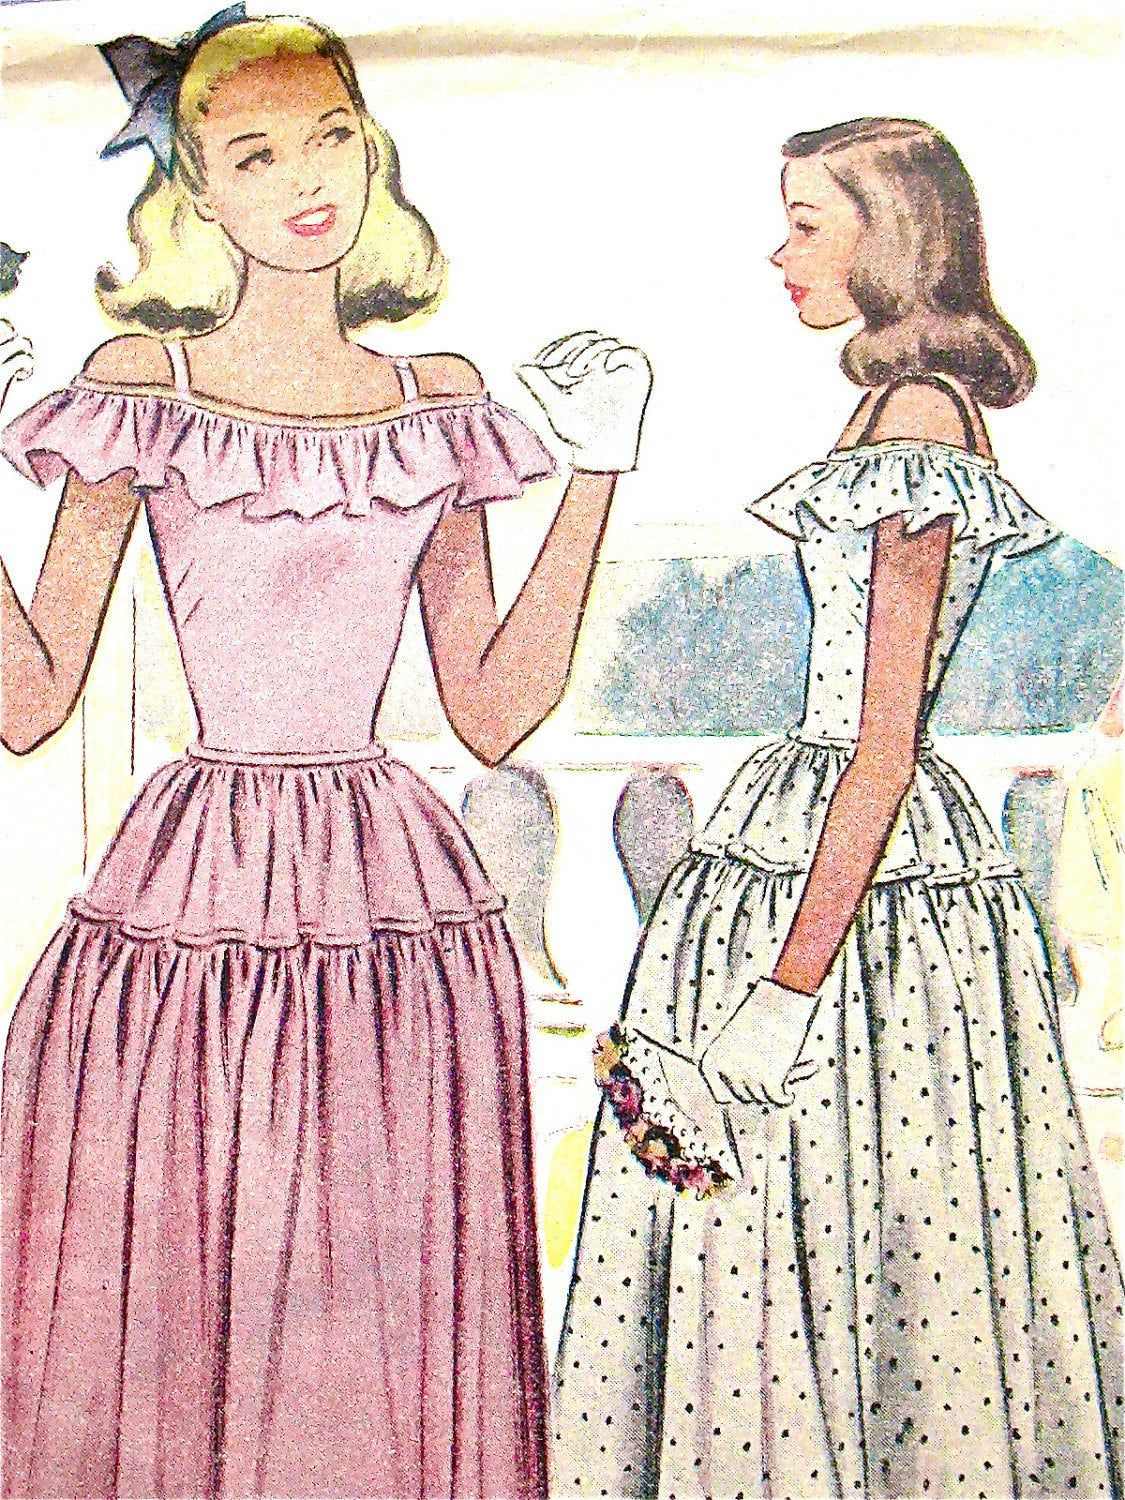 1940 Vintage Sewing Pattern Mccall 6547 Juniors Formal Prom Dress Evening Dress Bust 29 Formal Dresses Prom Evening Dresses Prom Vintage Sewing Patterns [ 1500 x 1125 Pixel ]